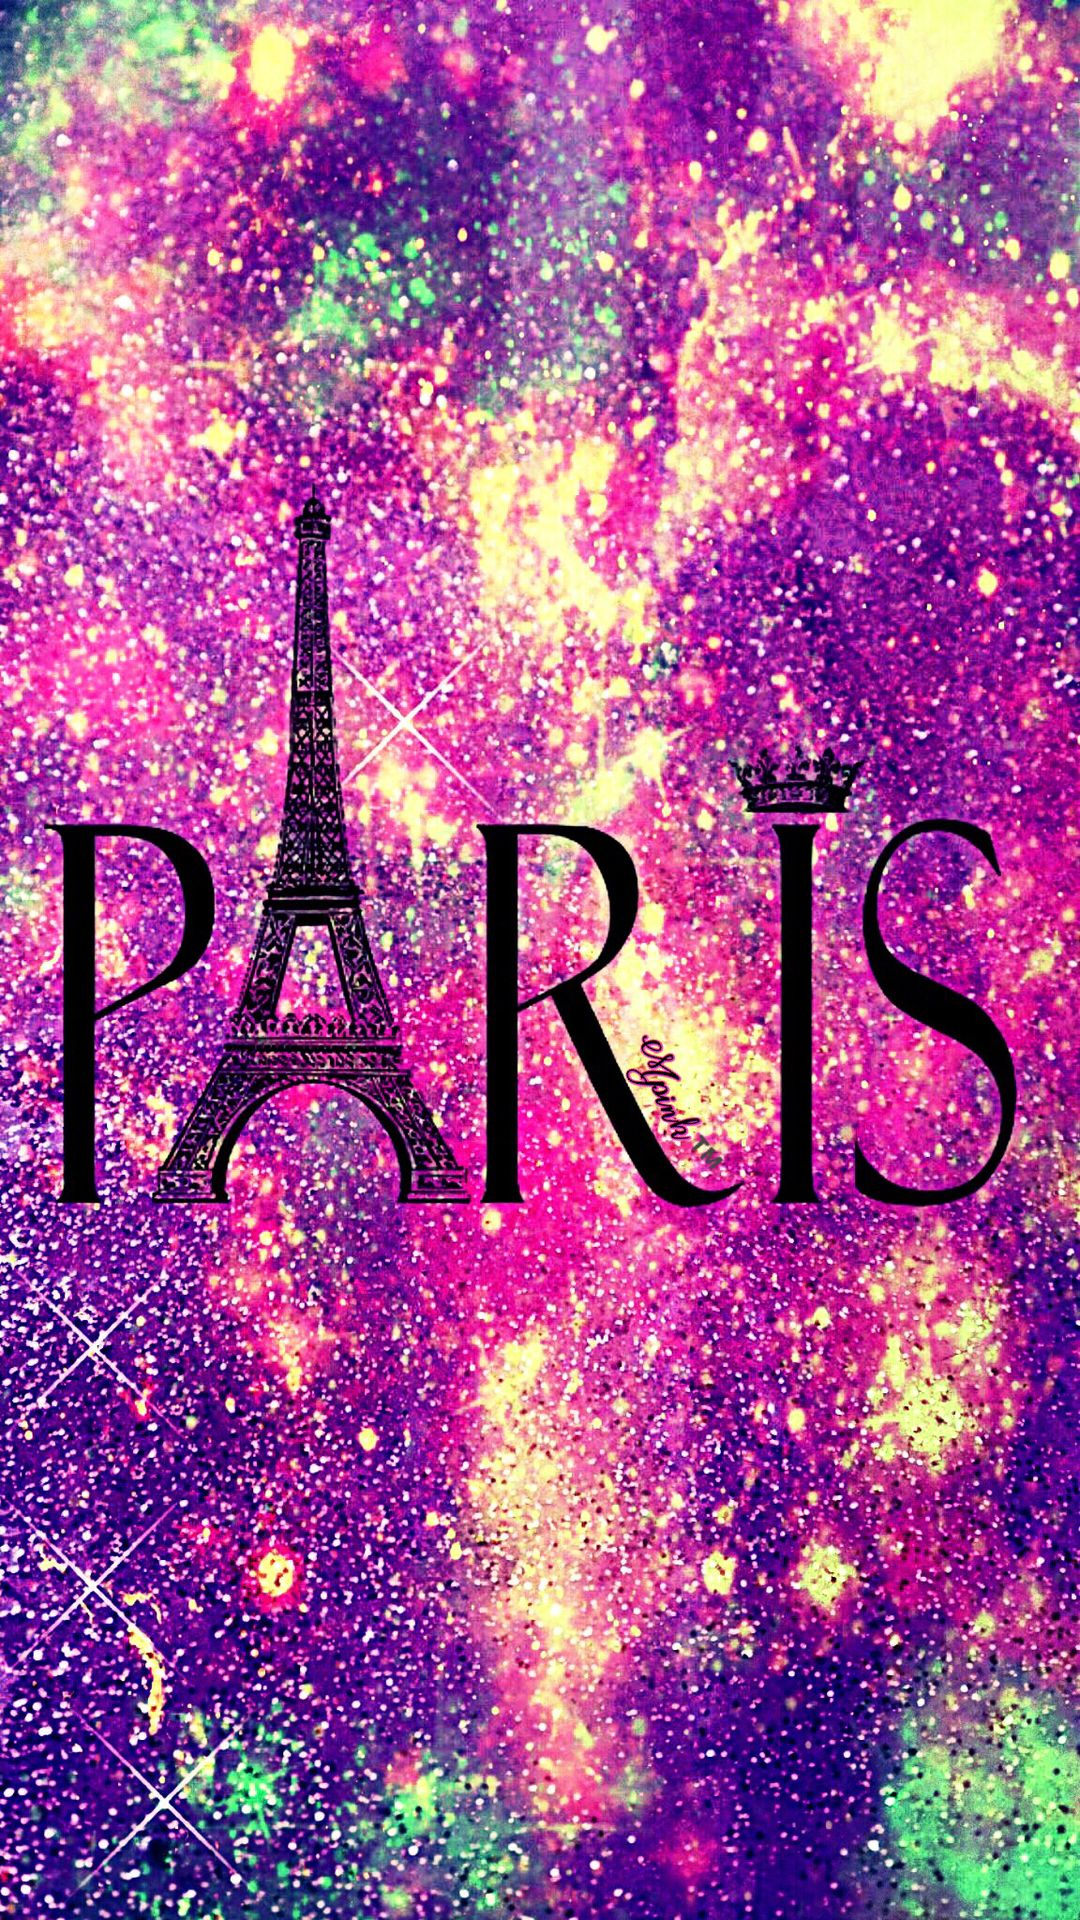 Shimmer Paris Galaxy Wallpaper androidwallpaper